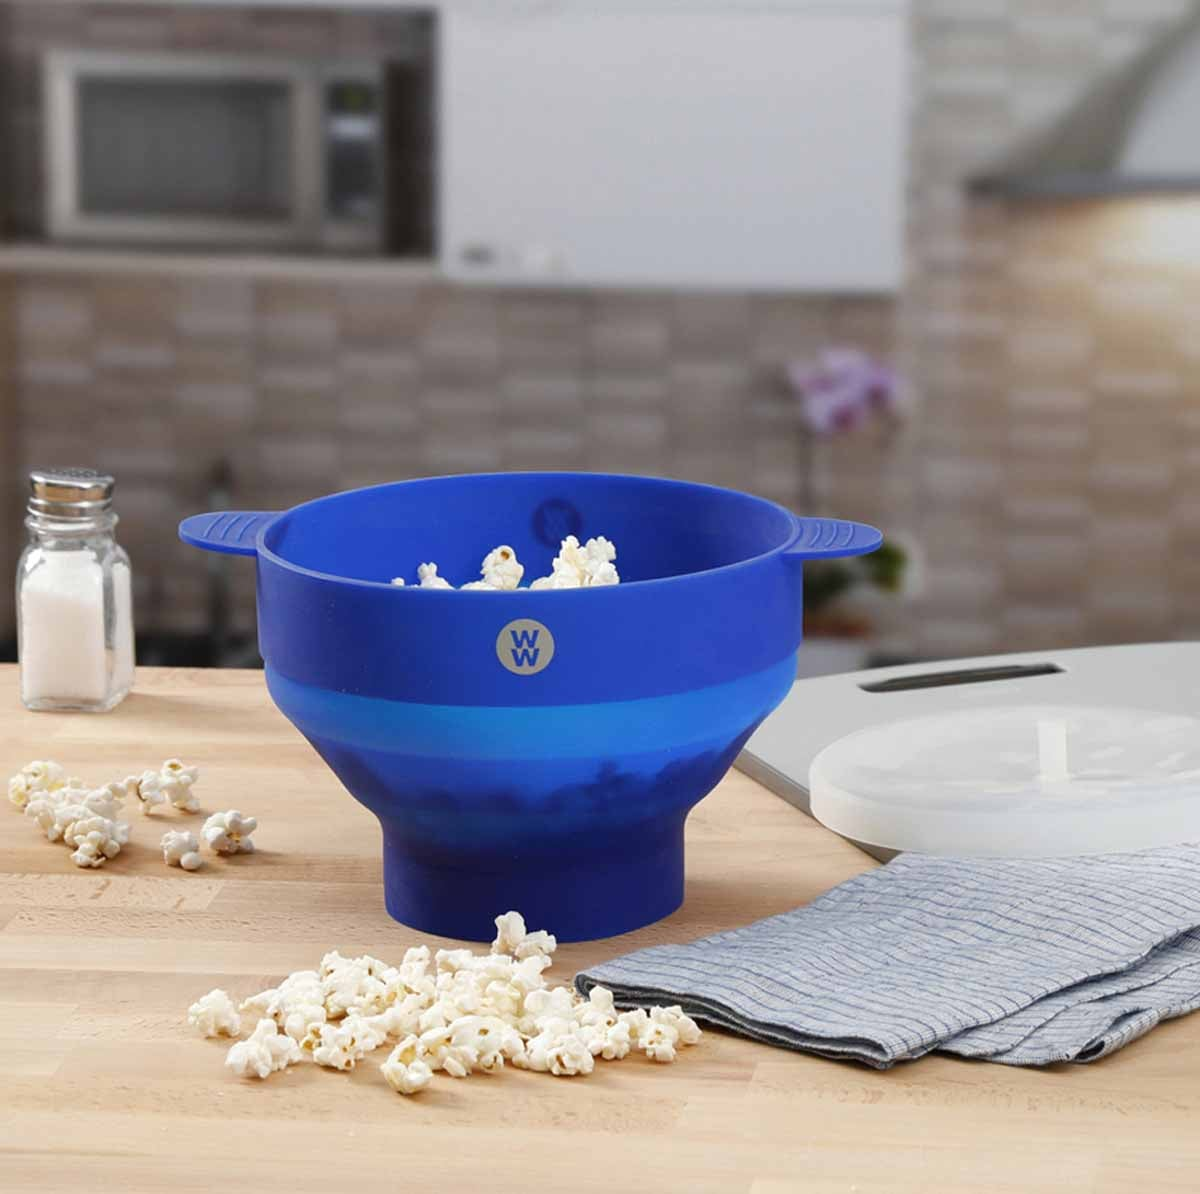 Silicone Microwave Popcorn Popper - alternate view